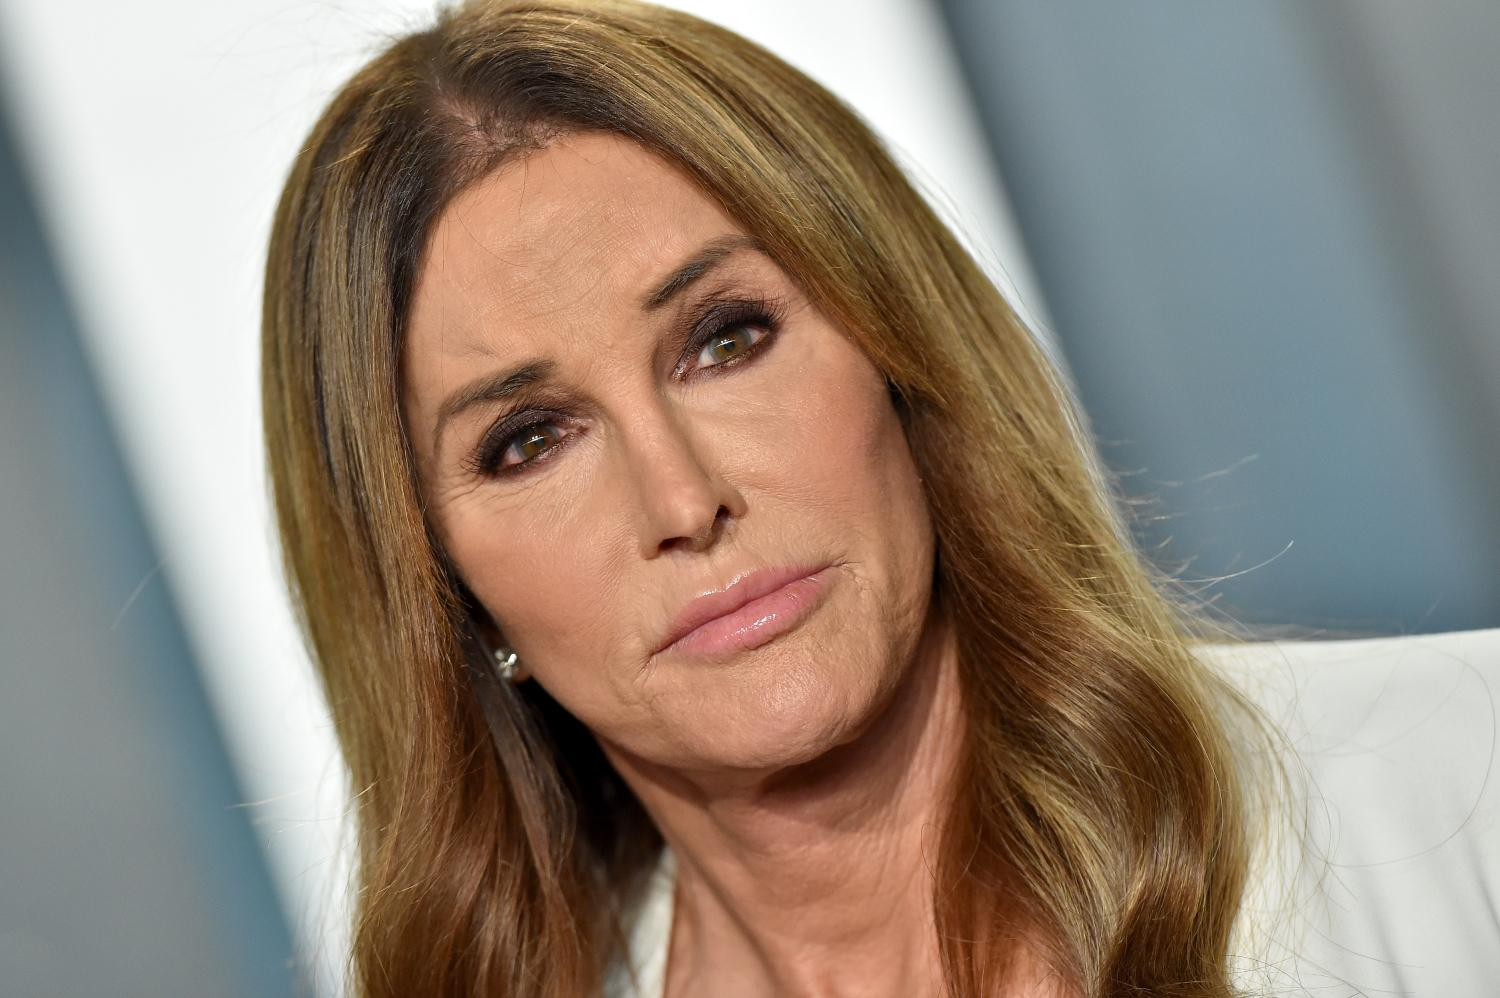 Caitlyn Jenner Dragged On Social Media After Arguing Against 'Trans Girls' Participating In Female Sports